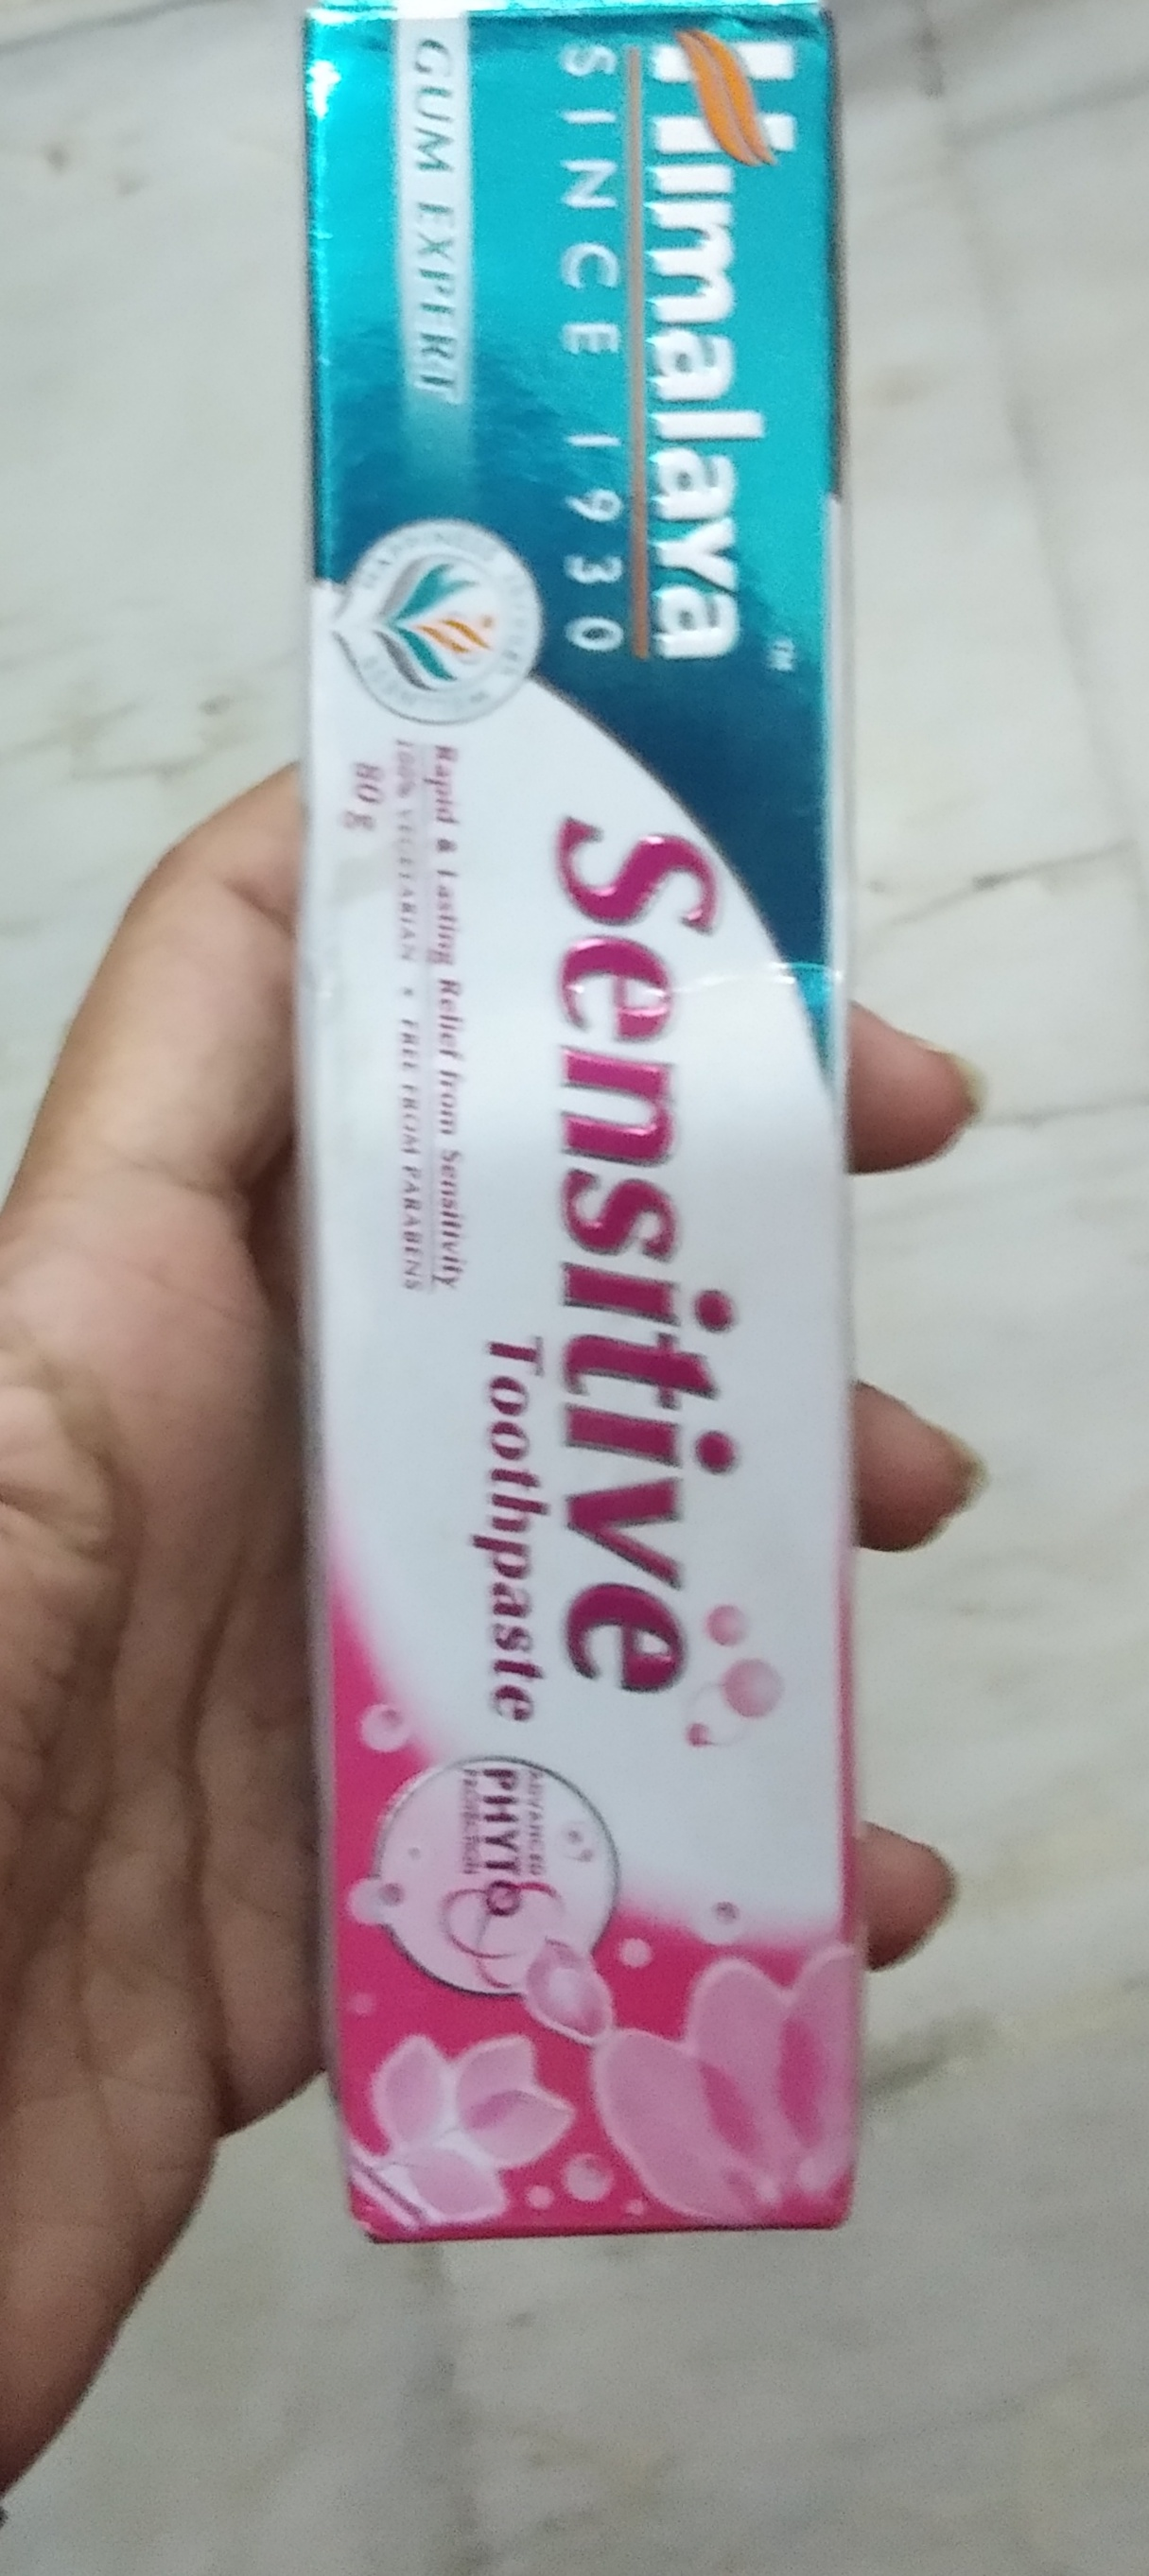 Himalaya Herbals Sensi Relief Herbal Toothpaste-Good one-By Nasreen-2